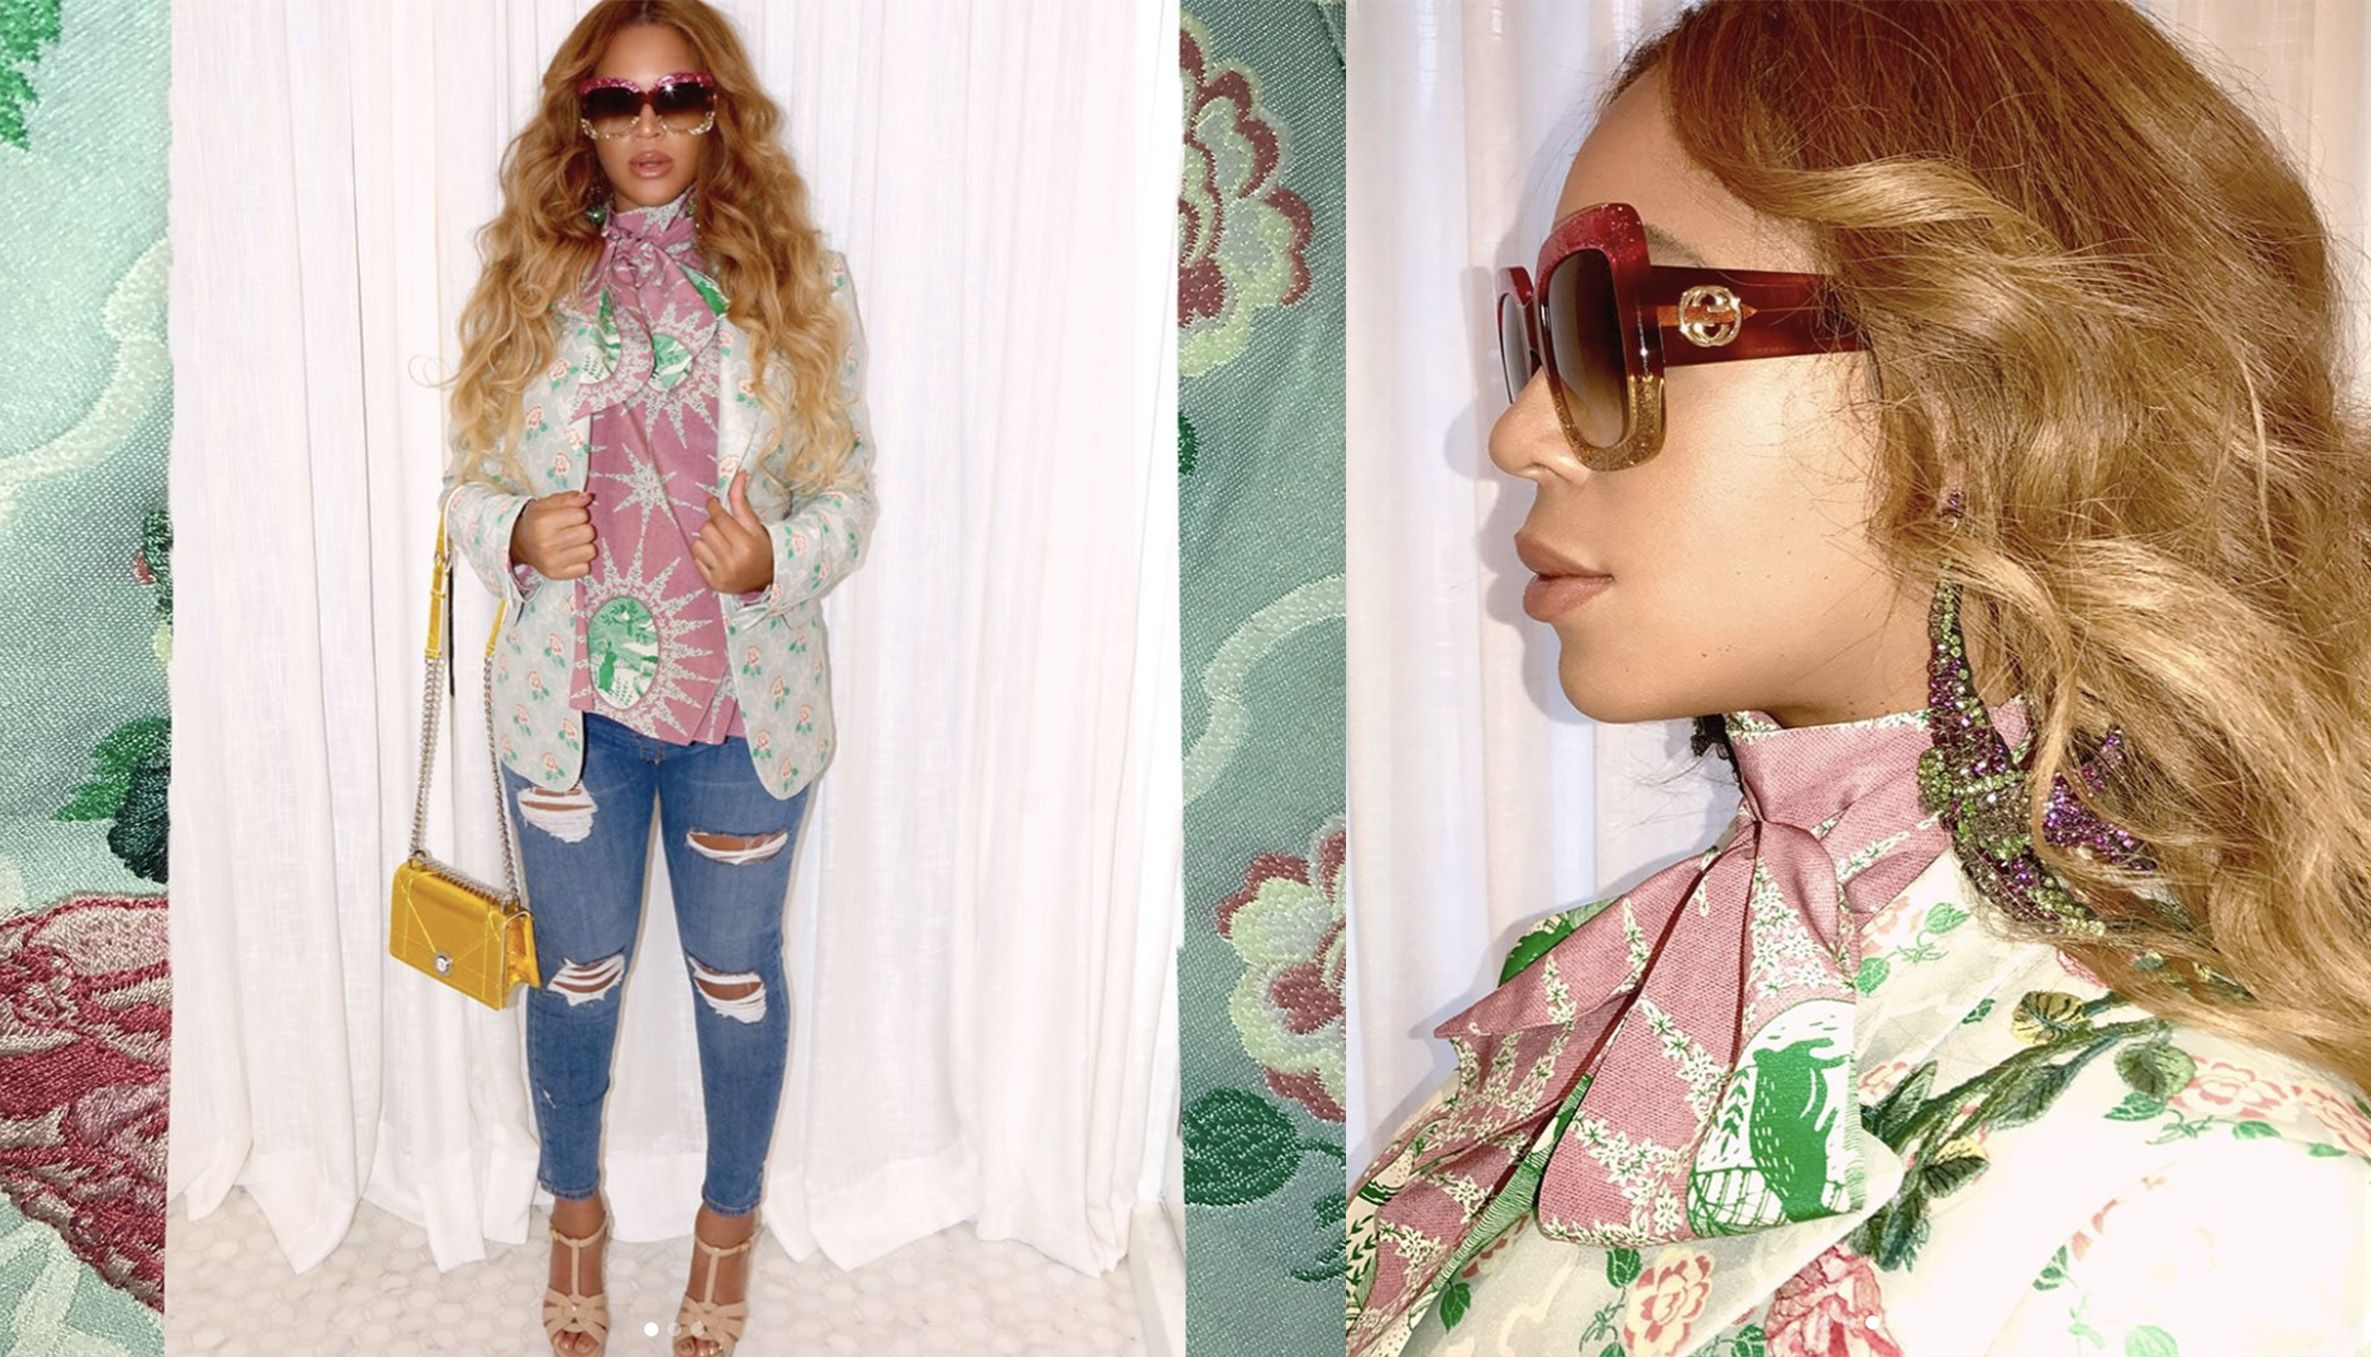 dd995950ef4 Beyonce s Best Style Moments - 50+ Best Beyoncé Knowles Fashion Moments